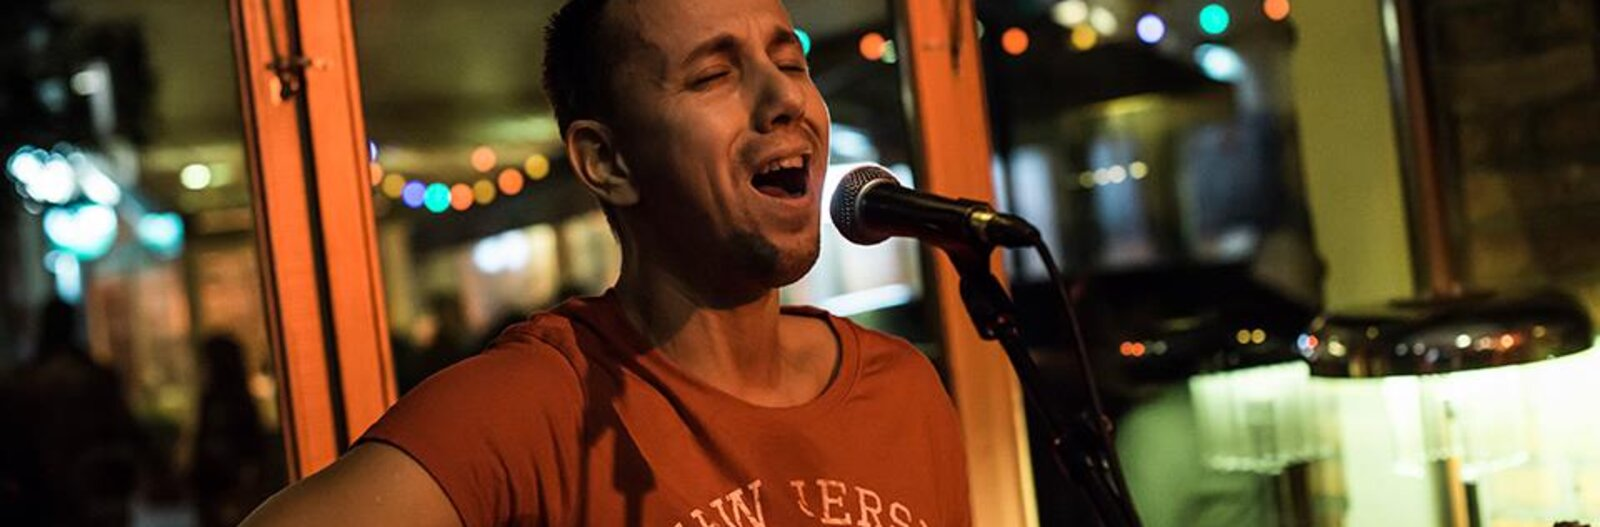 5 open-mic nights at varied Budapest venues